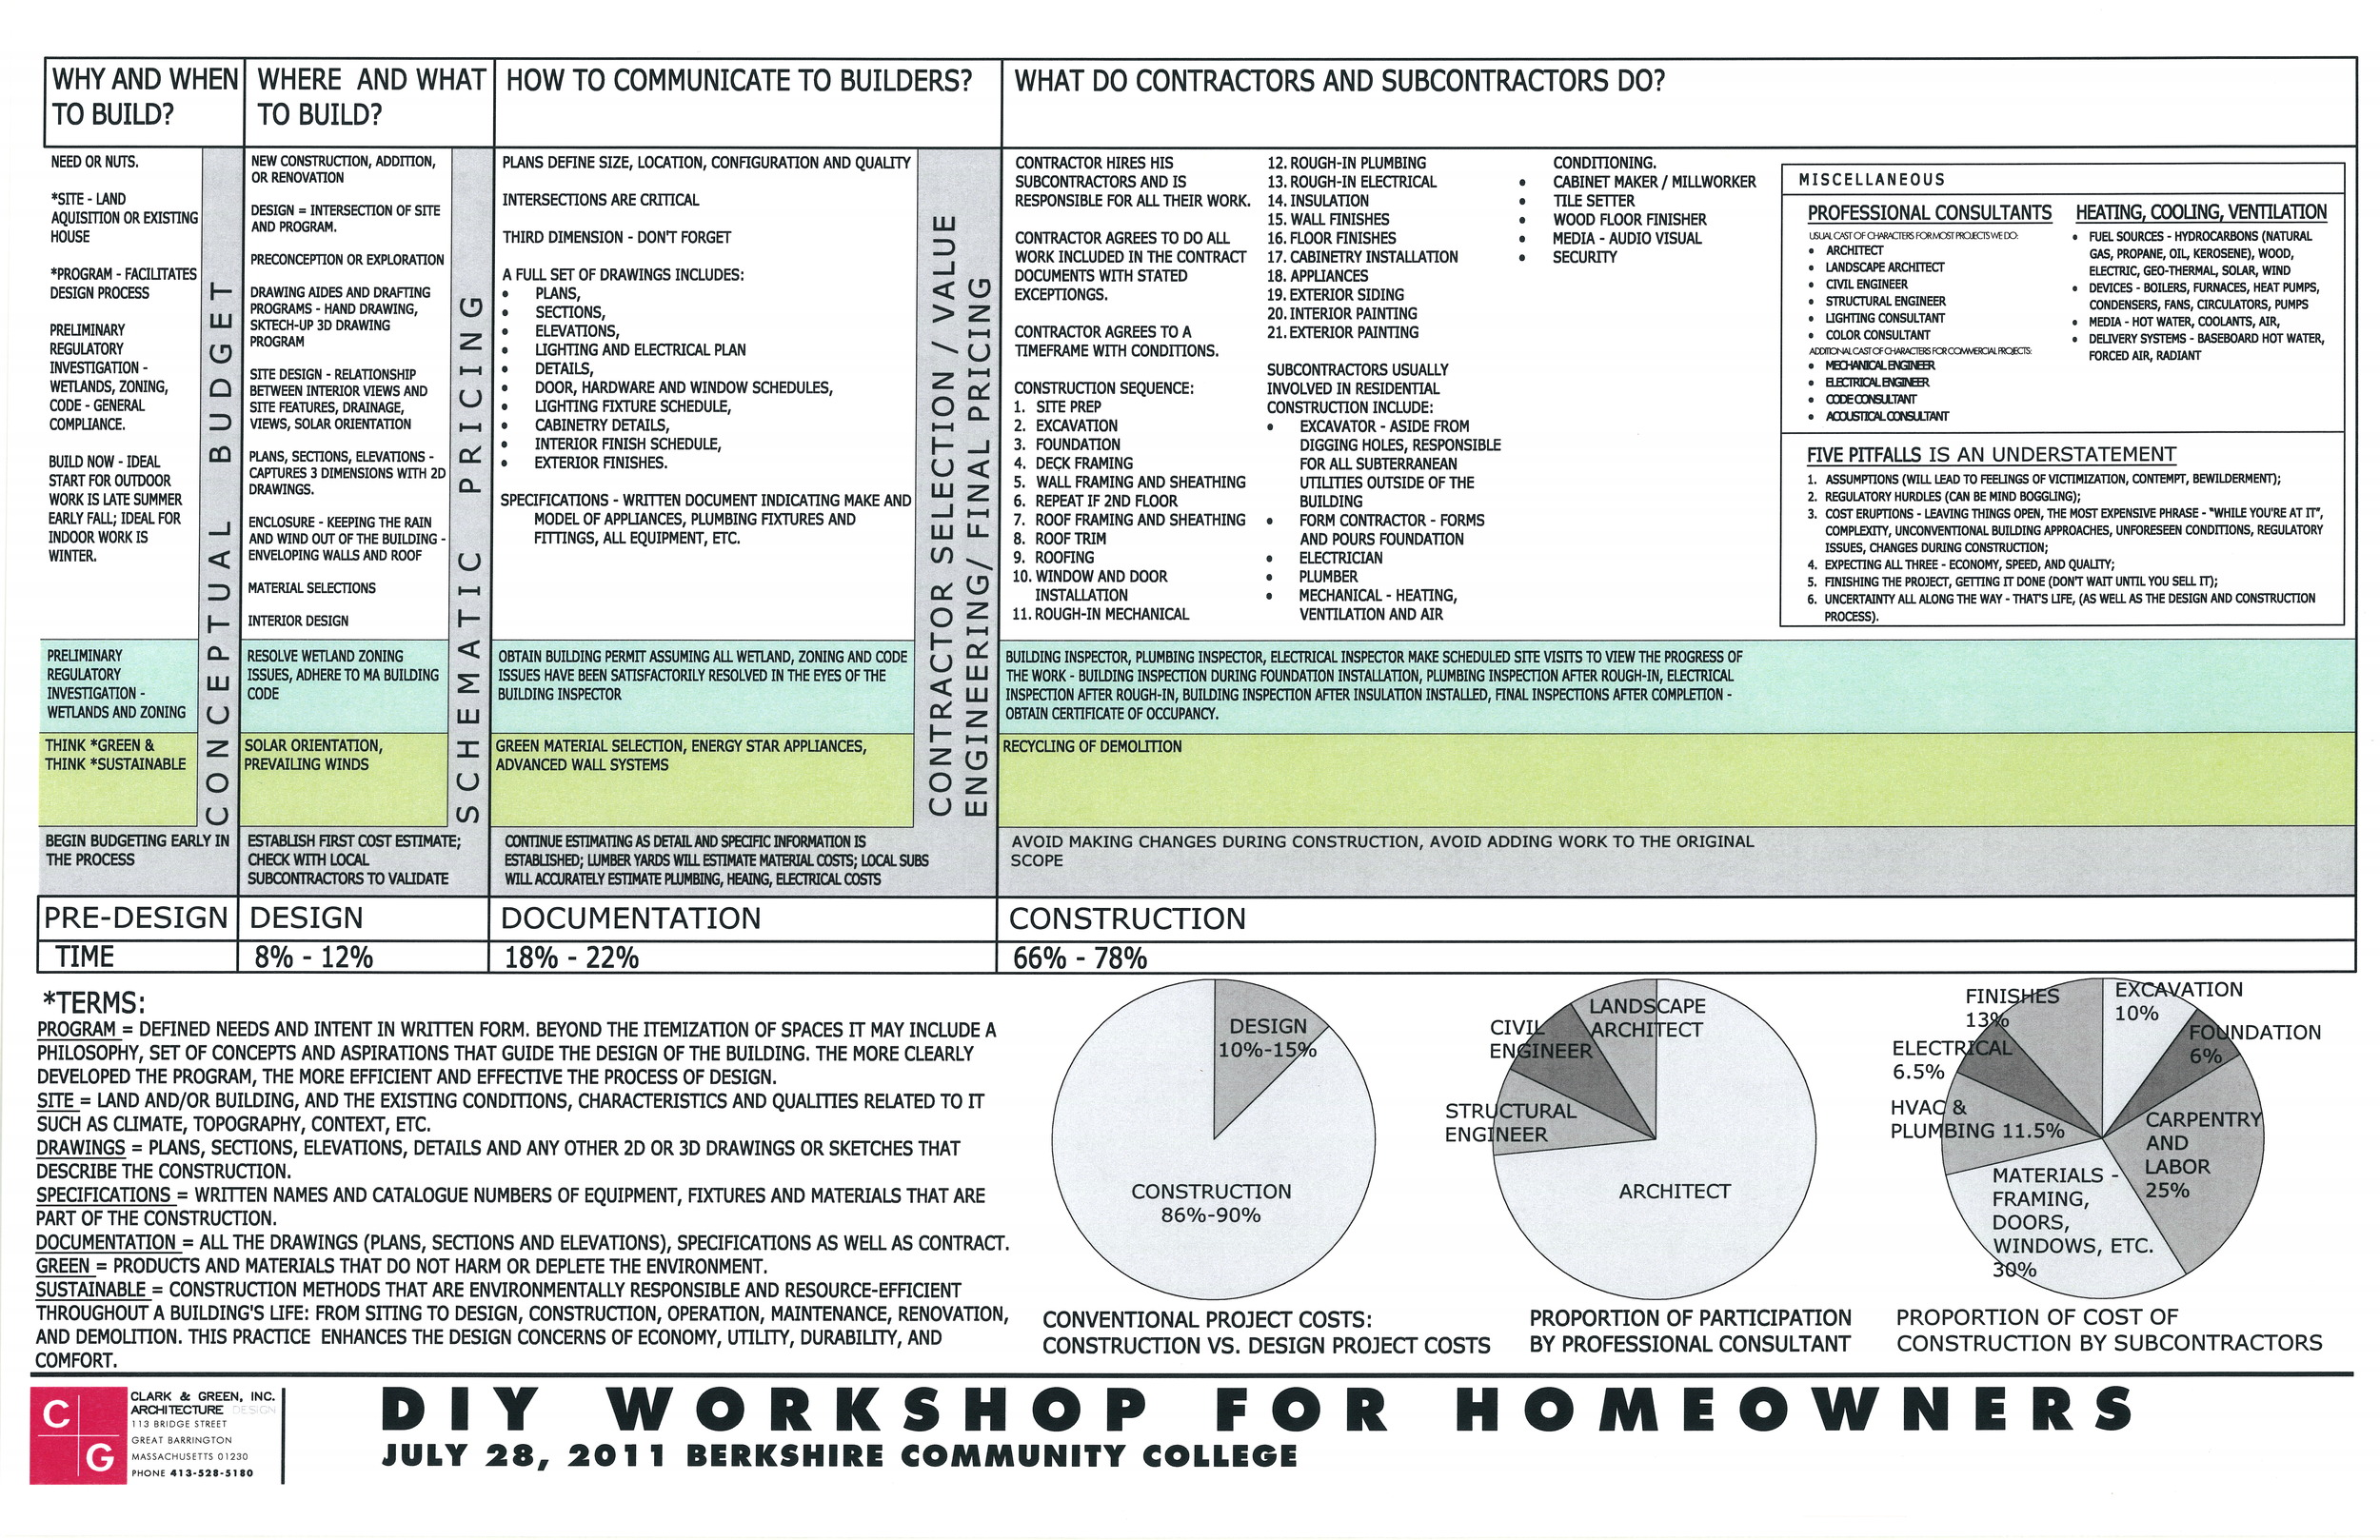 Diagram consolidating facts, information and thoughts about Do-It-Yourself  residential design  and construction.